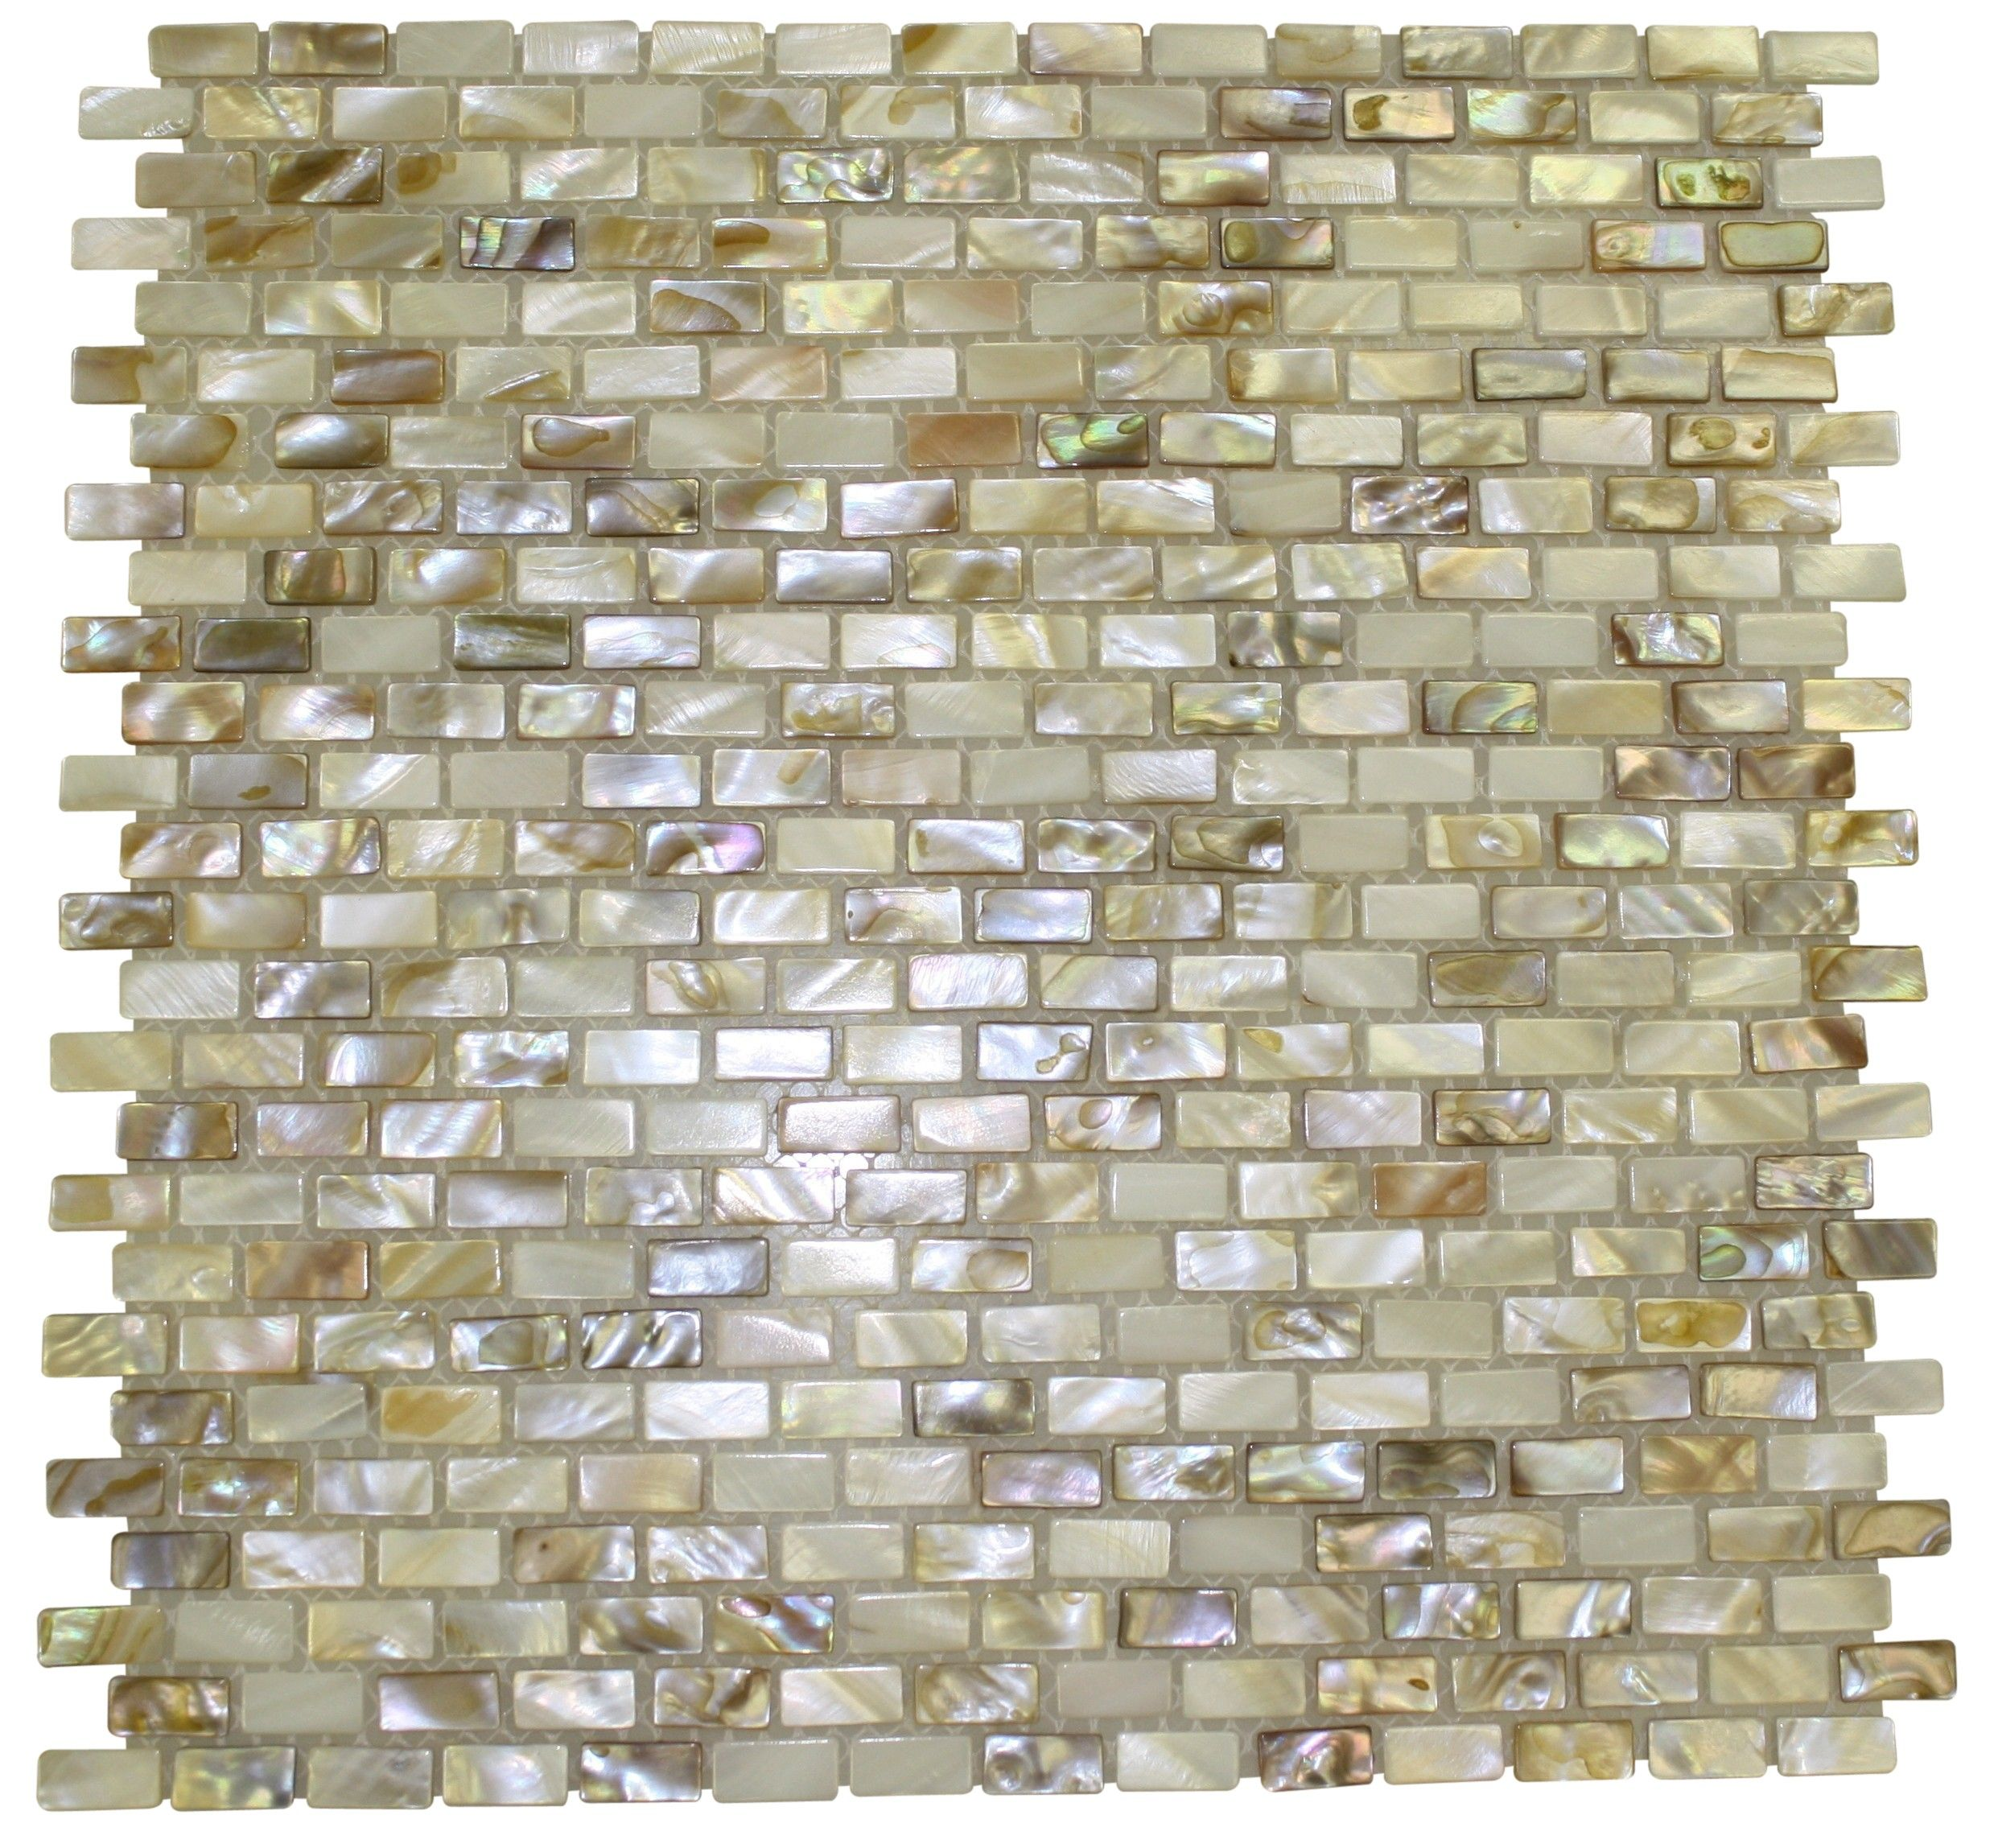 South Sea Pearls Mini Brick Pattern Tile 16 99 New House Ideas Pinterest S And Kitchen Back Splashes